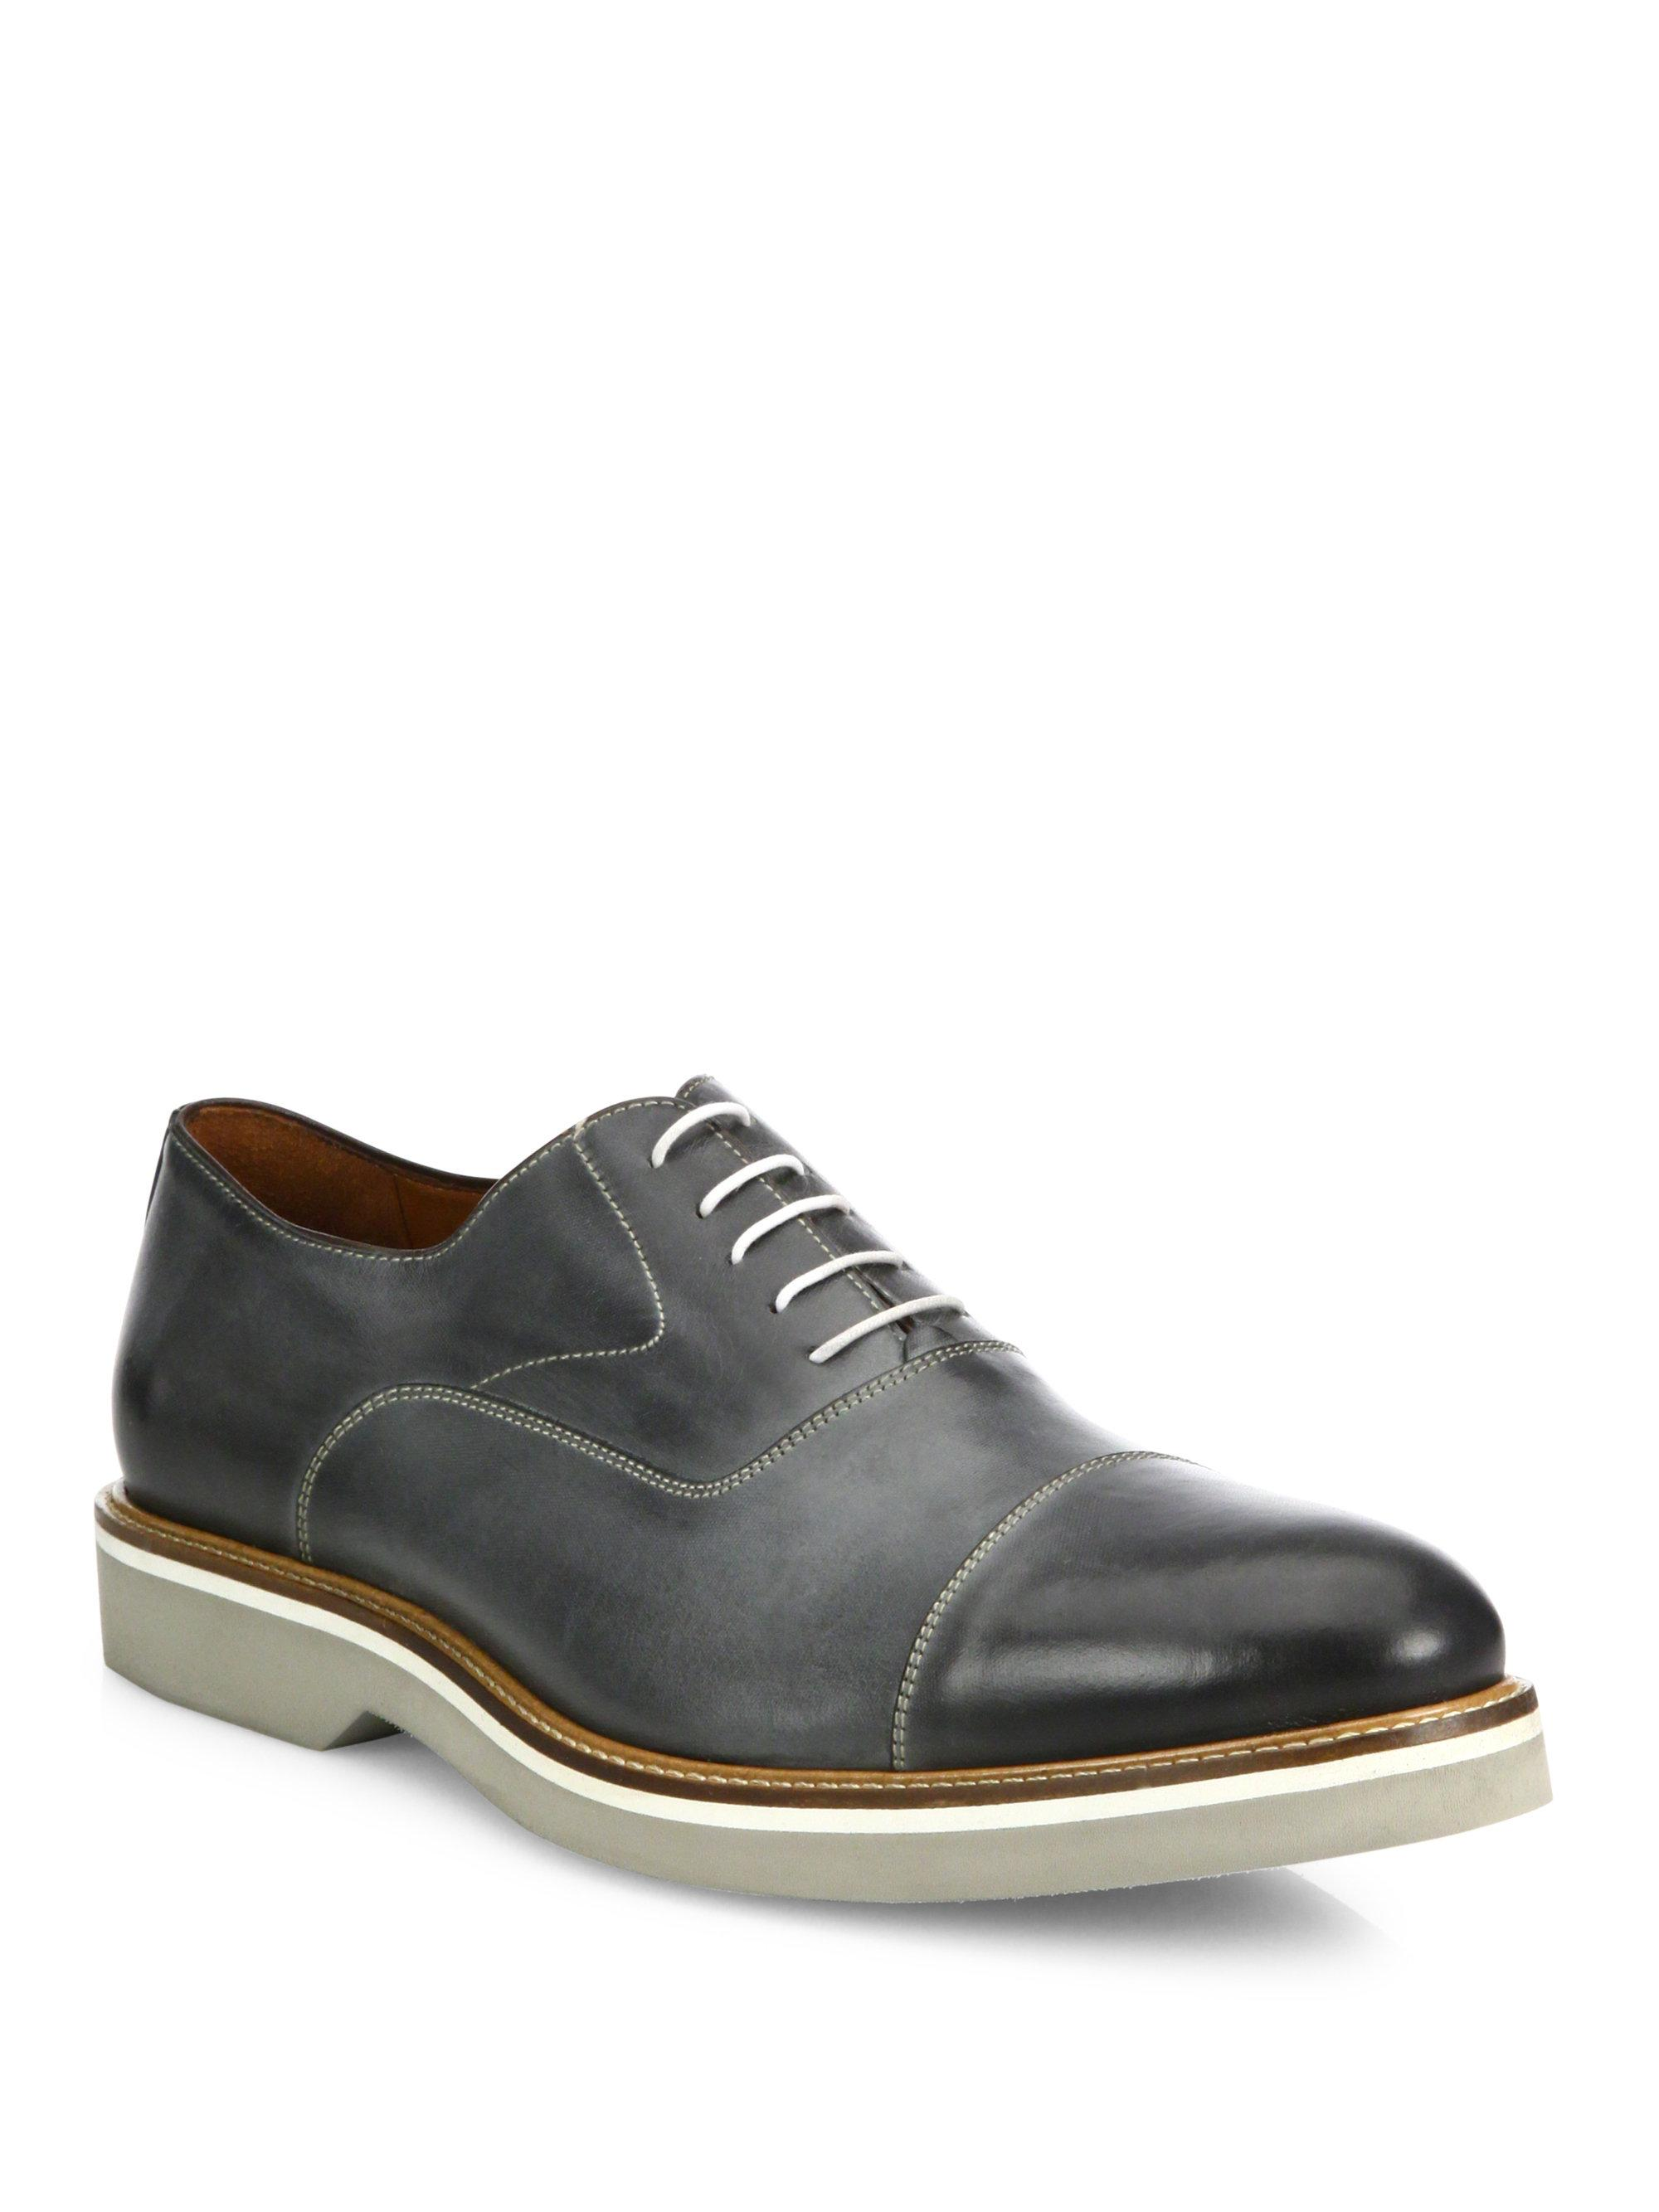 Saks Fifth Avenue COLLECTION Burnished Captoe Oxfords